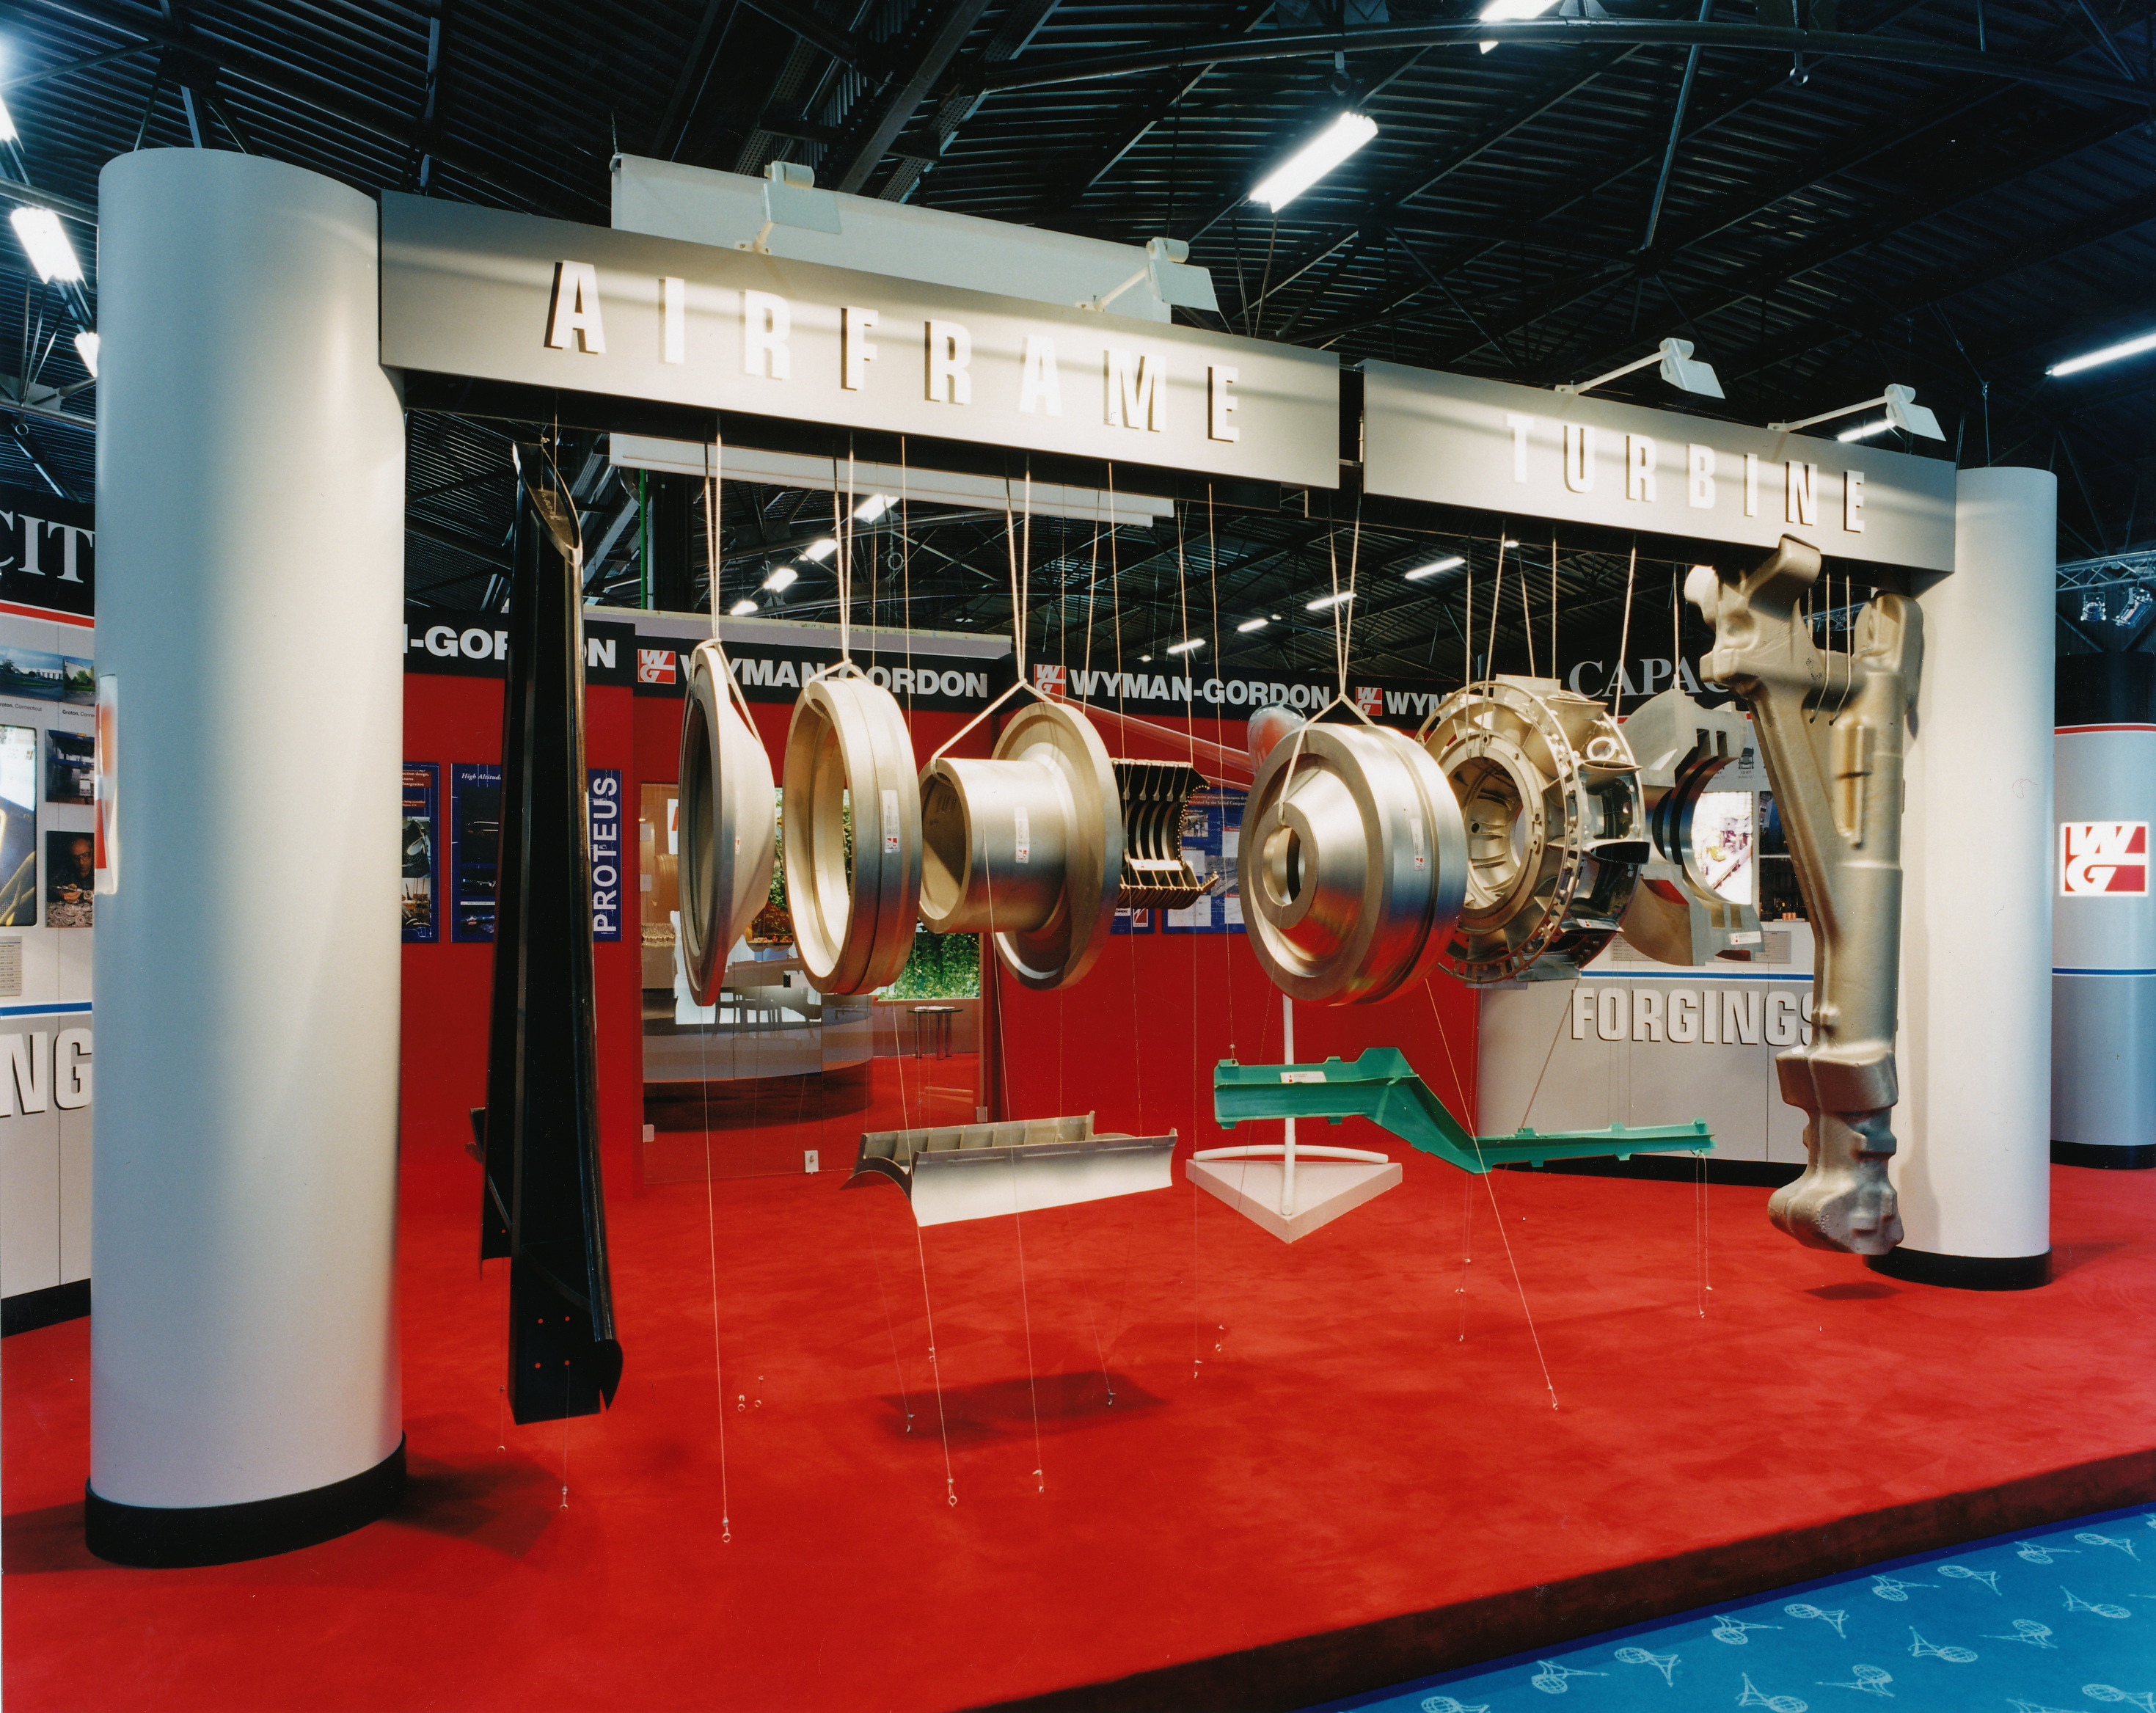 Hanging display of jet engine component parts hanging in an exploded view.